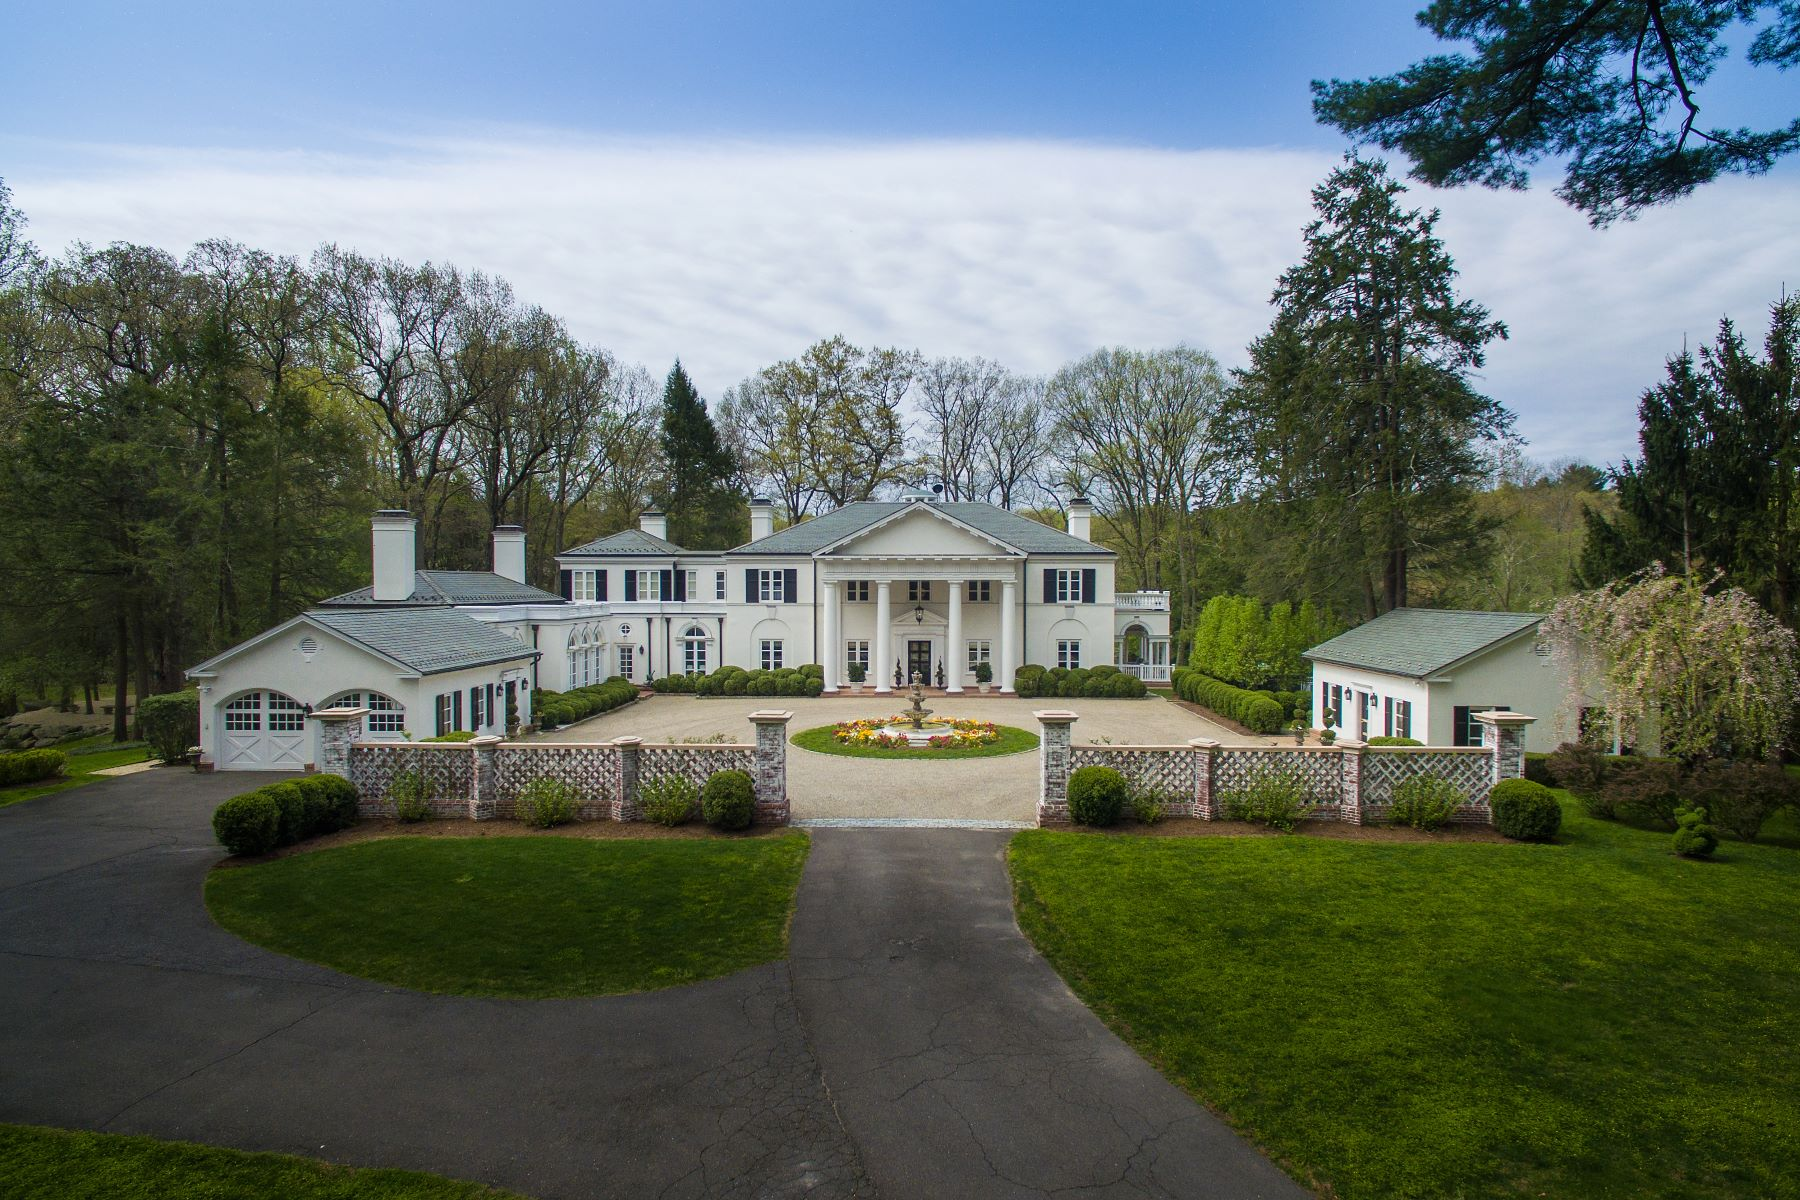 Single Family Home for Sale at 99 Huckleberry Hill Road 99 Huckleberry Hill Road New Canaan, Connecticut 06840 United States